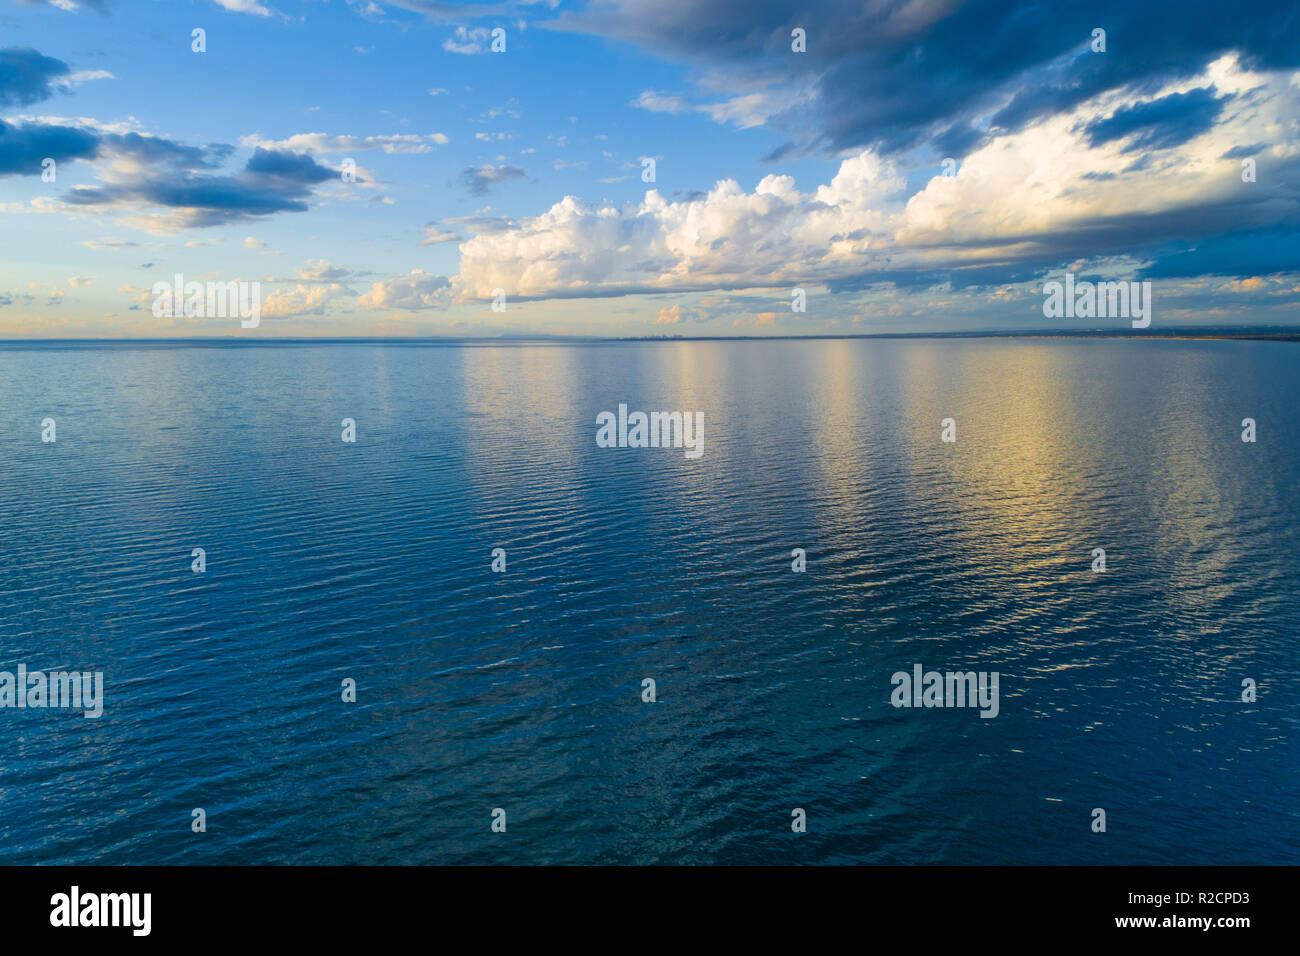 Clouds over water at sunset - aerial view - Stock Image